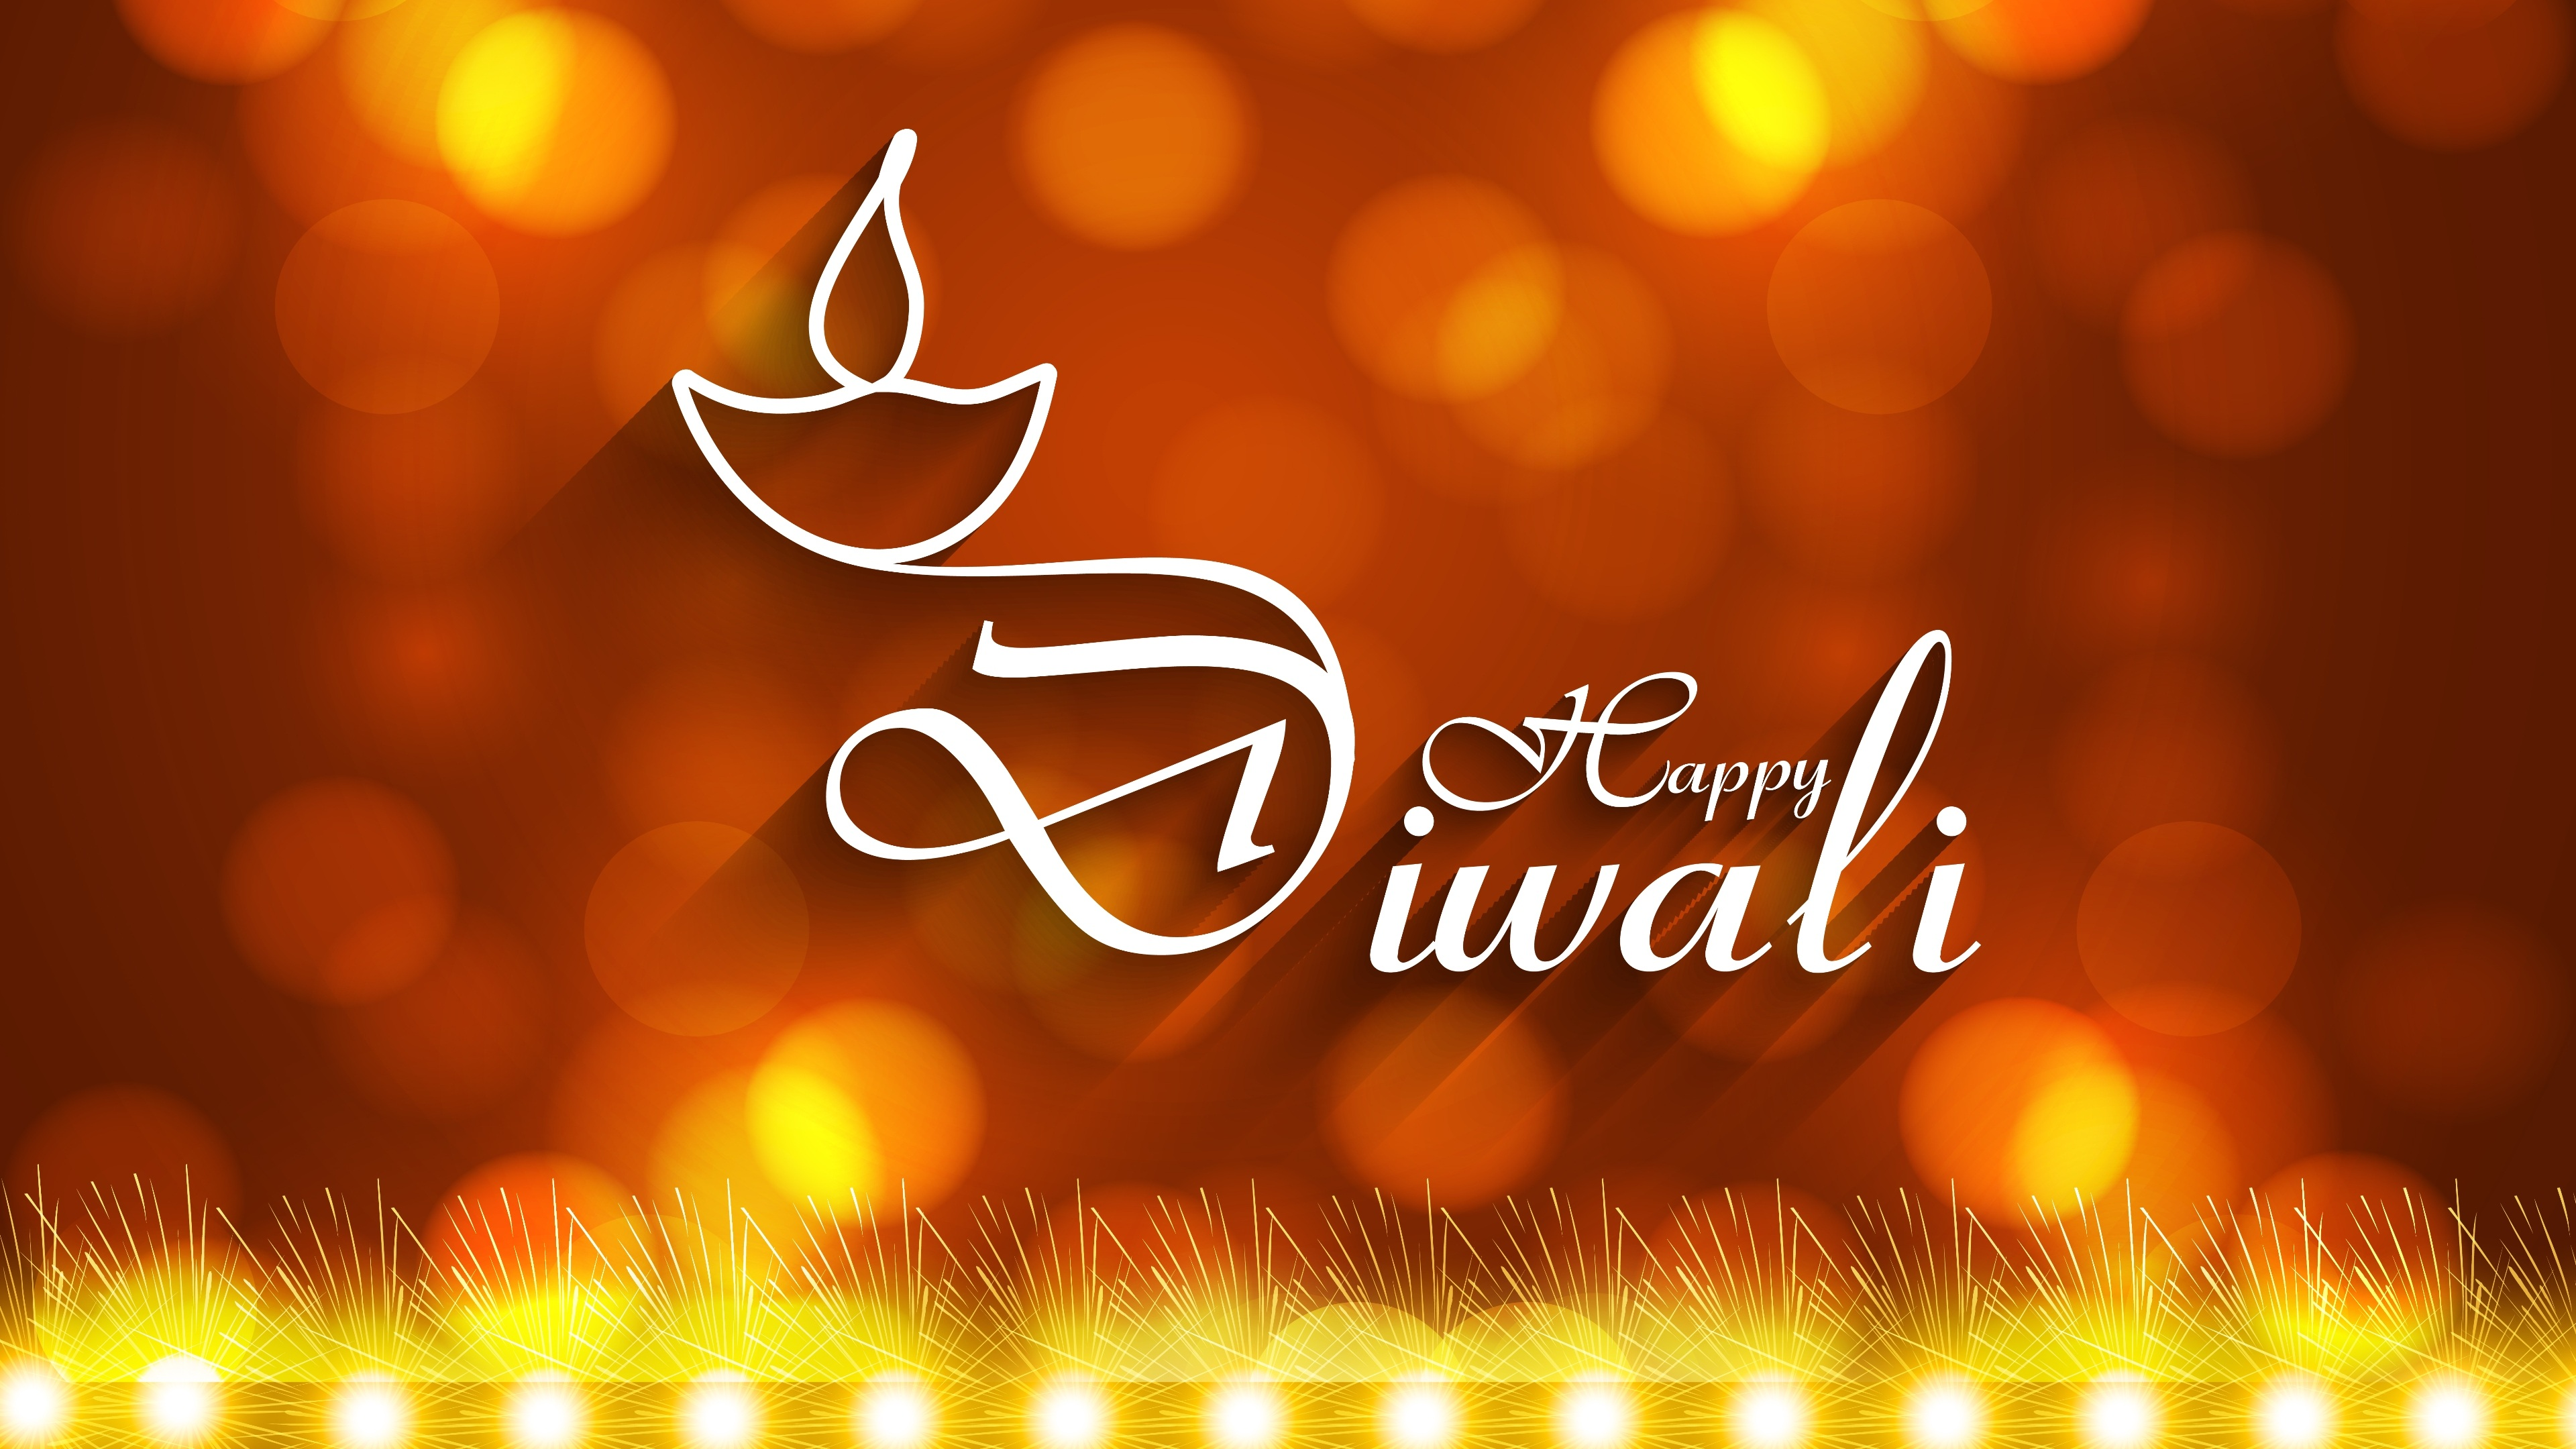 Download HD Happy Diwali Wallpapers Gallery